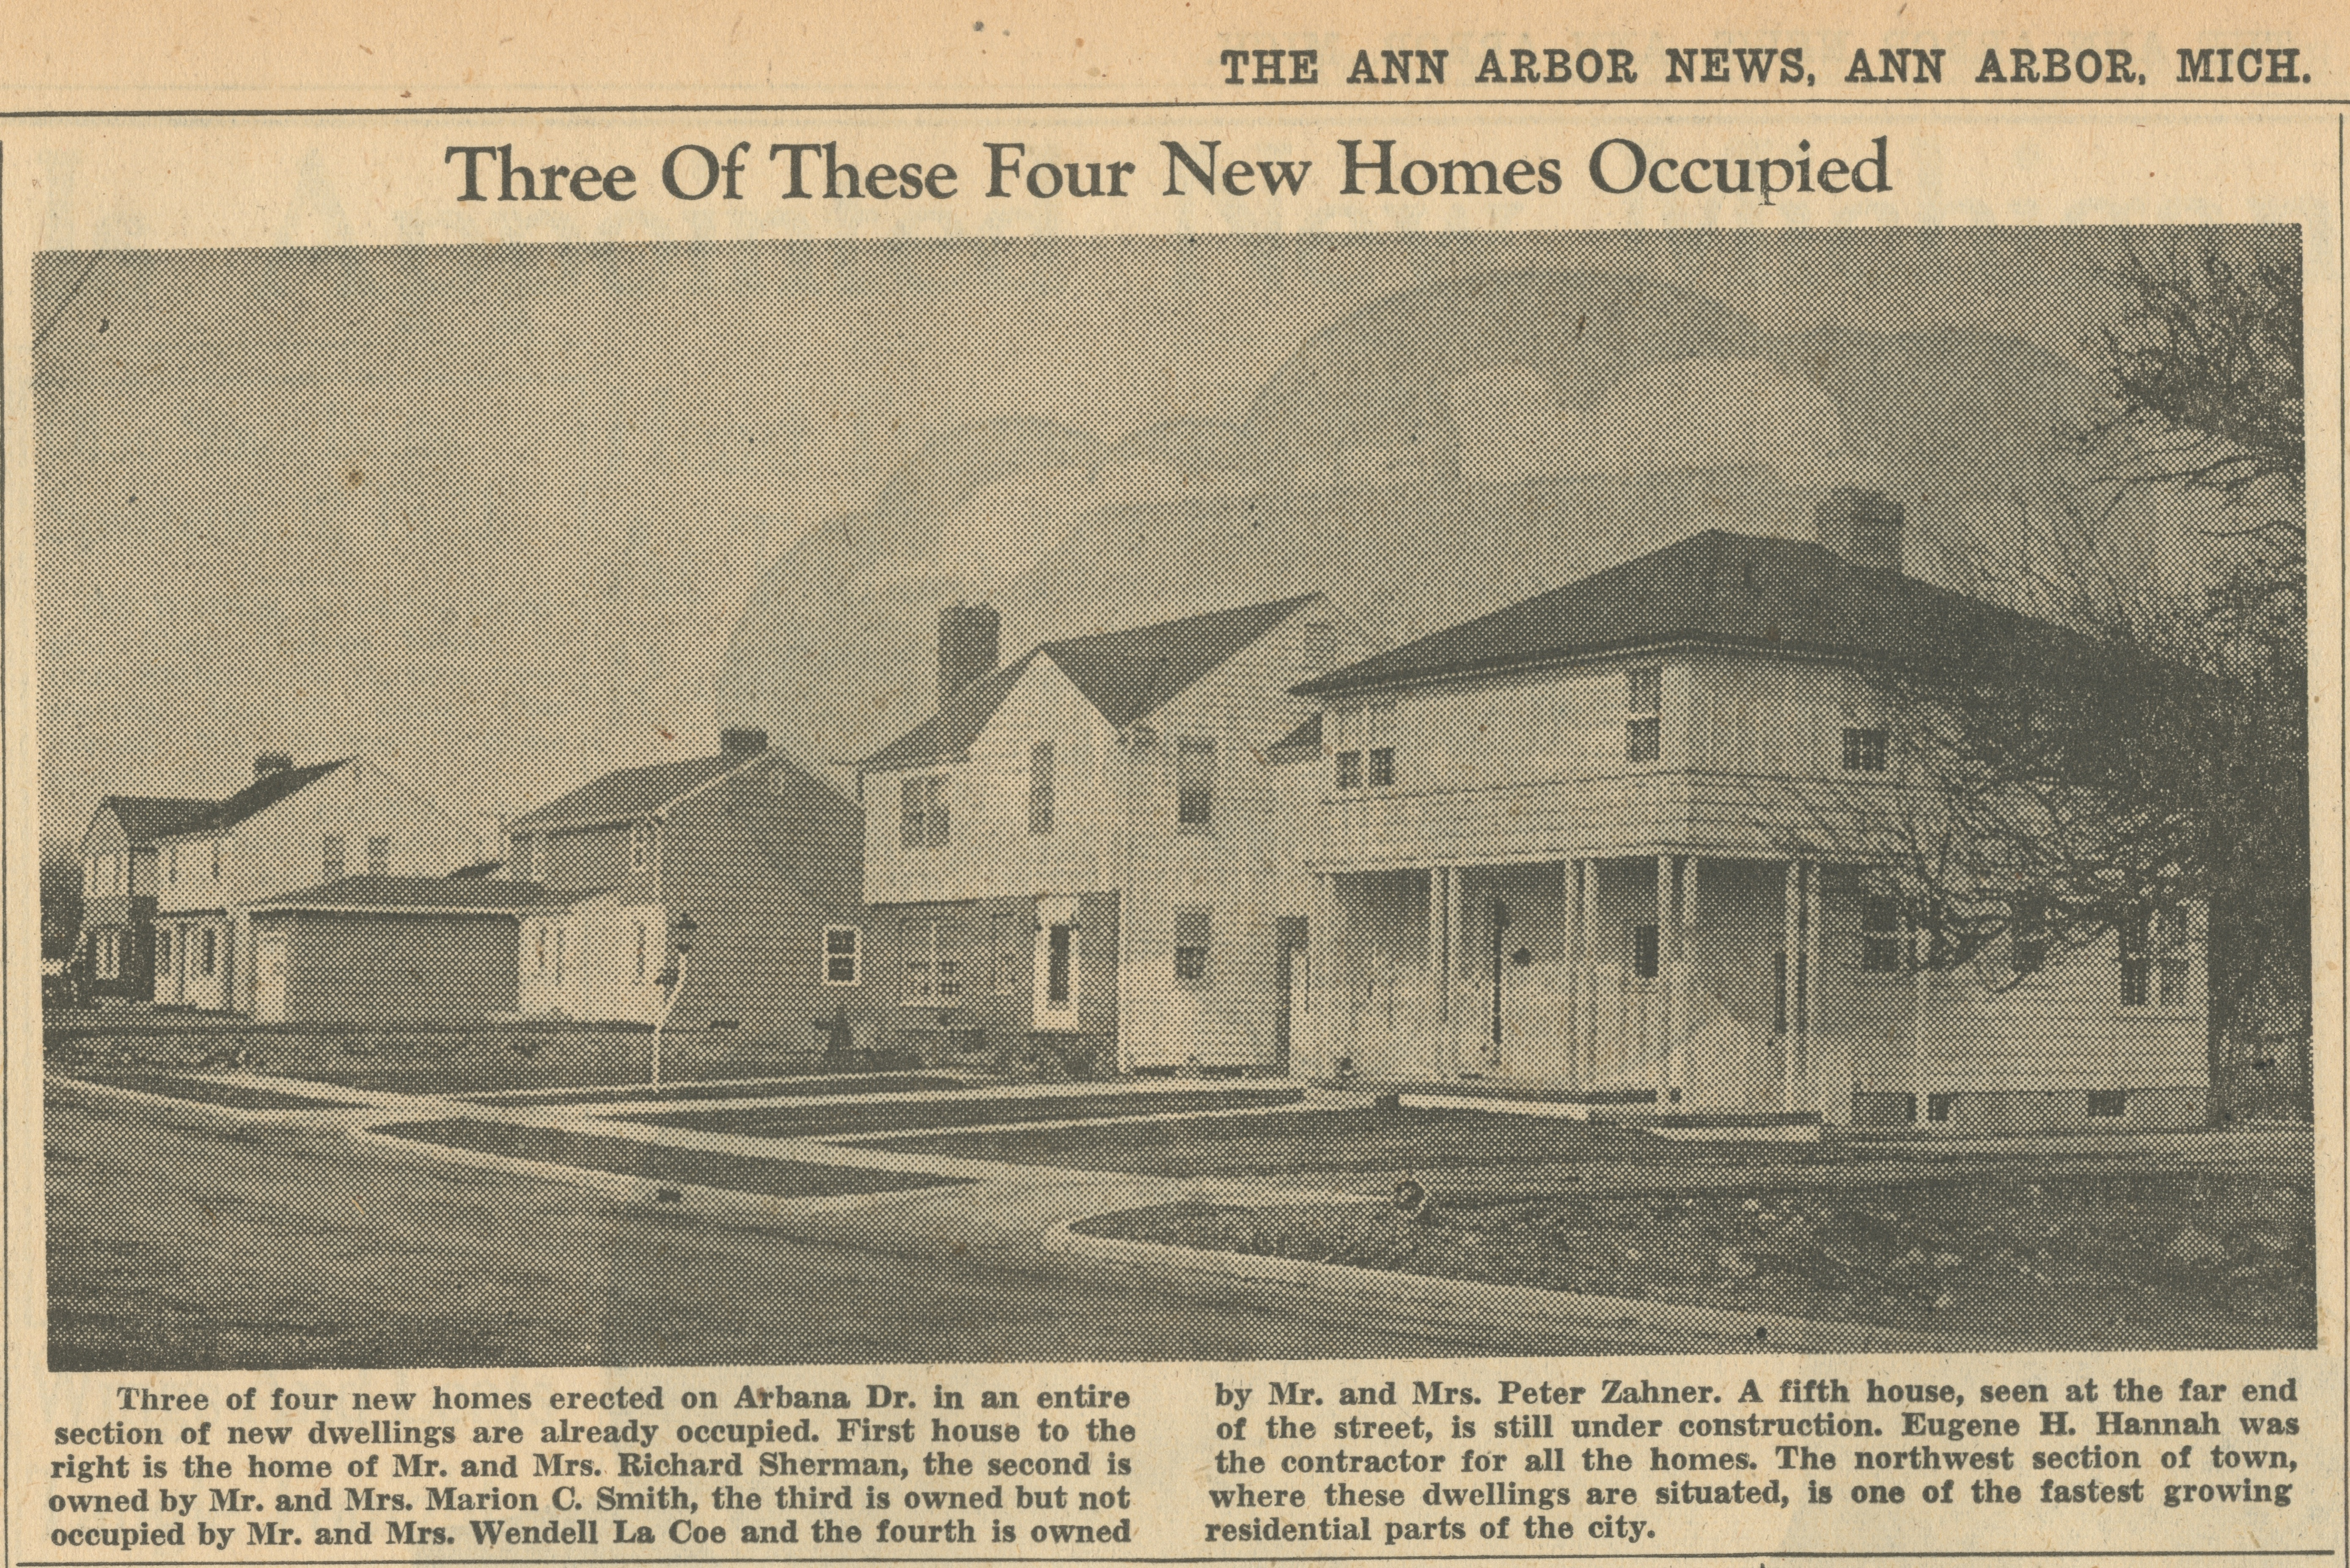 Three Of These Four New Homes Occupied image